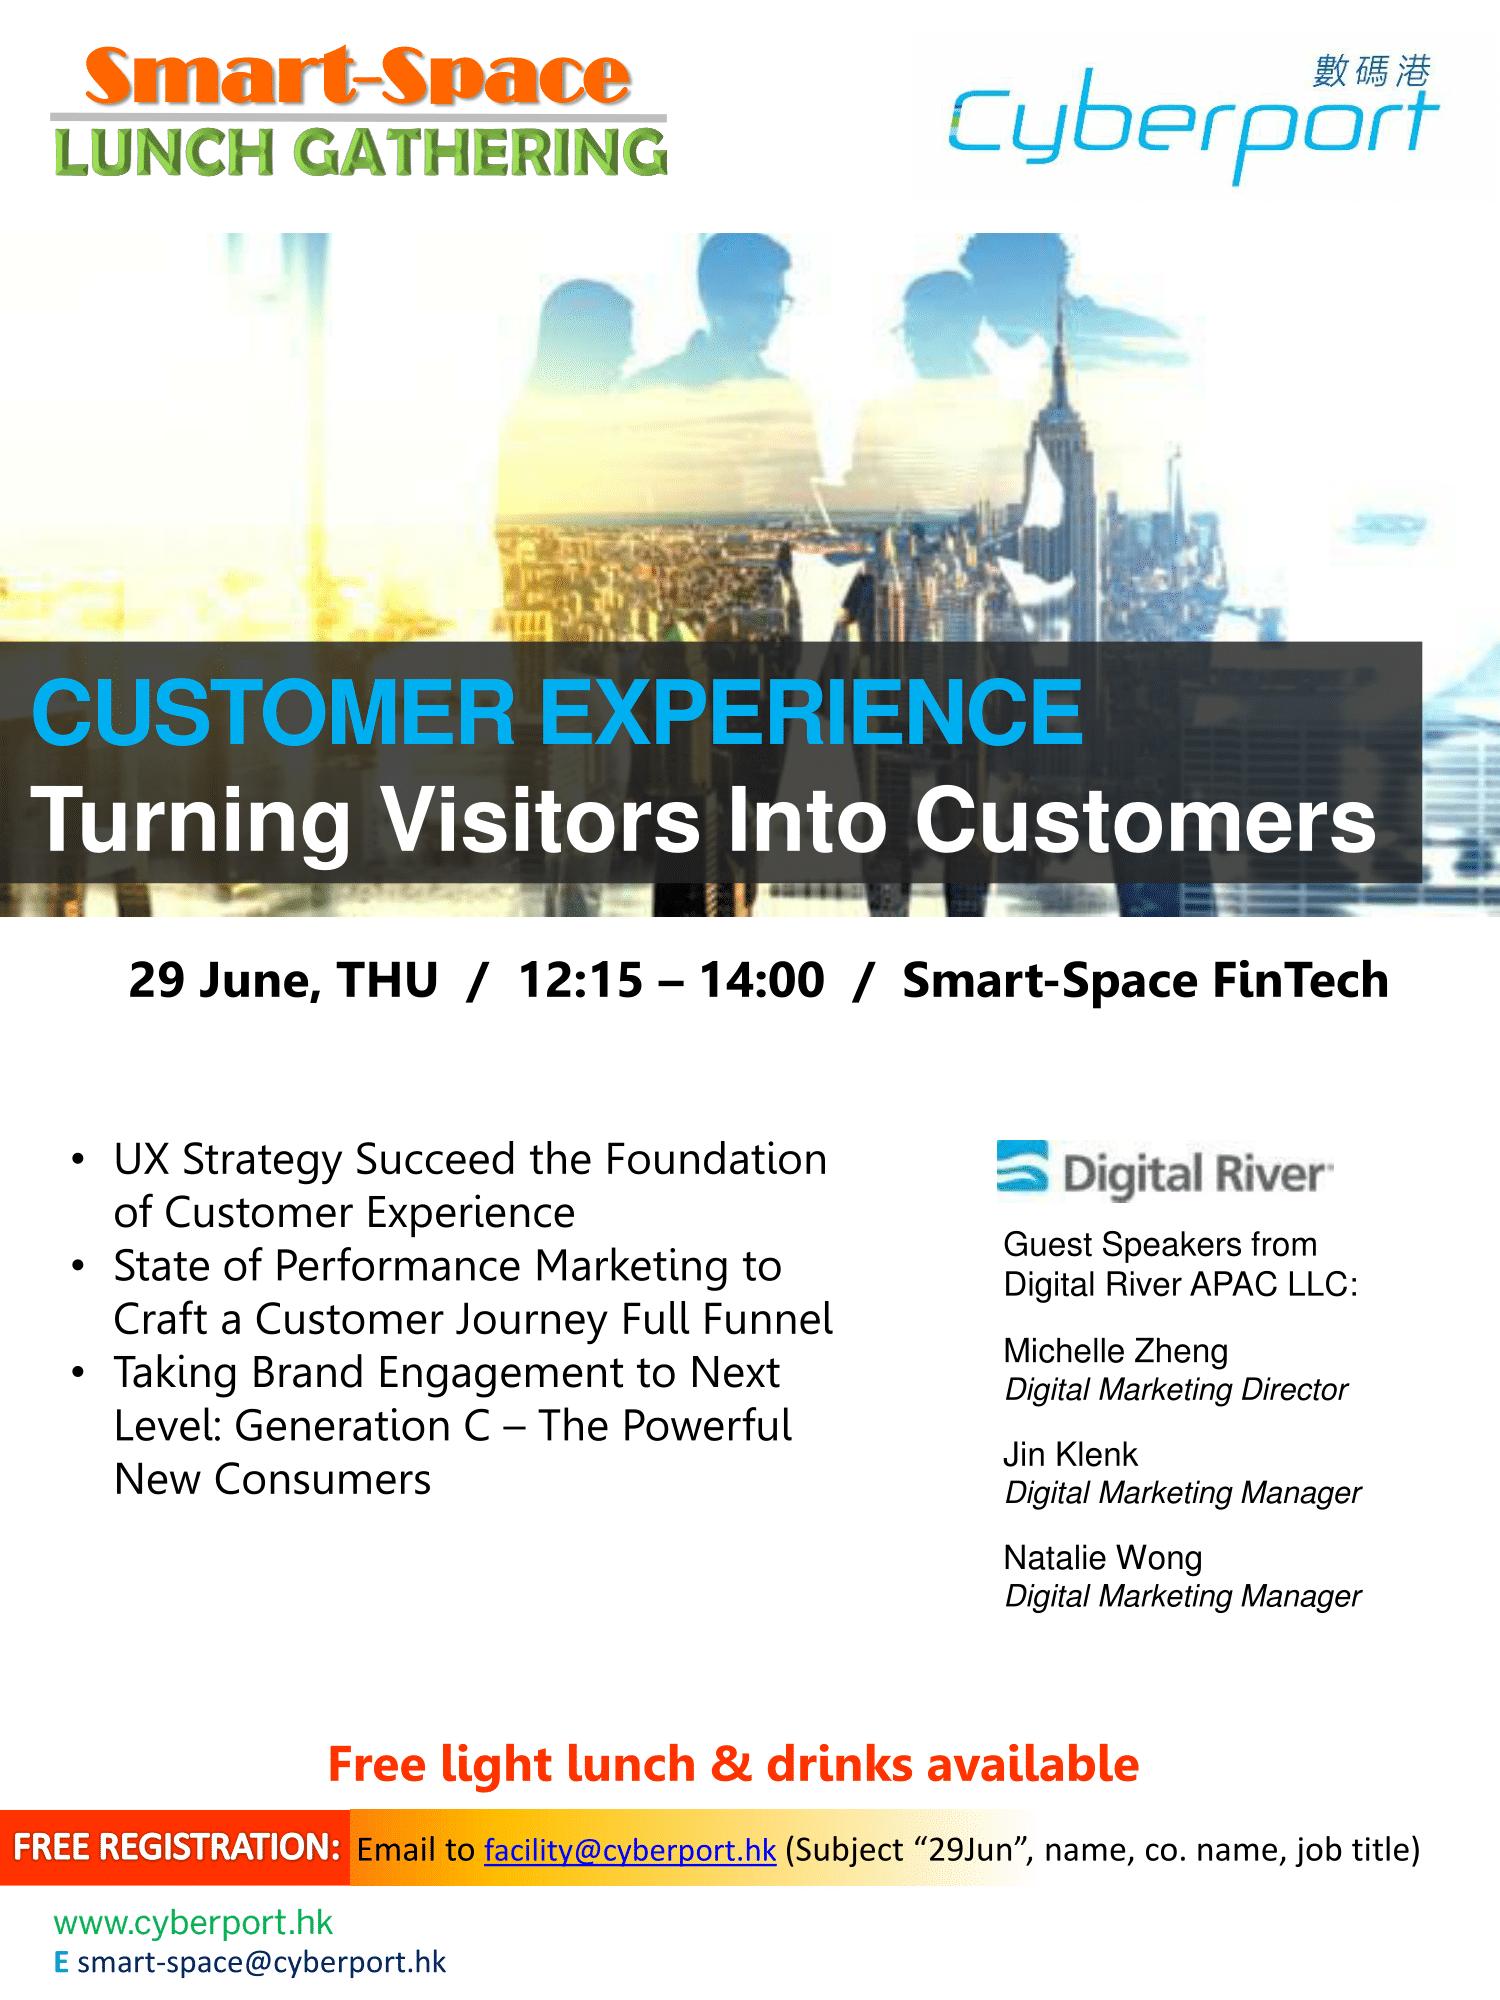 Smart-Space Lunch Gathering: Customer experience-centric approach to turn visitors into customers